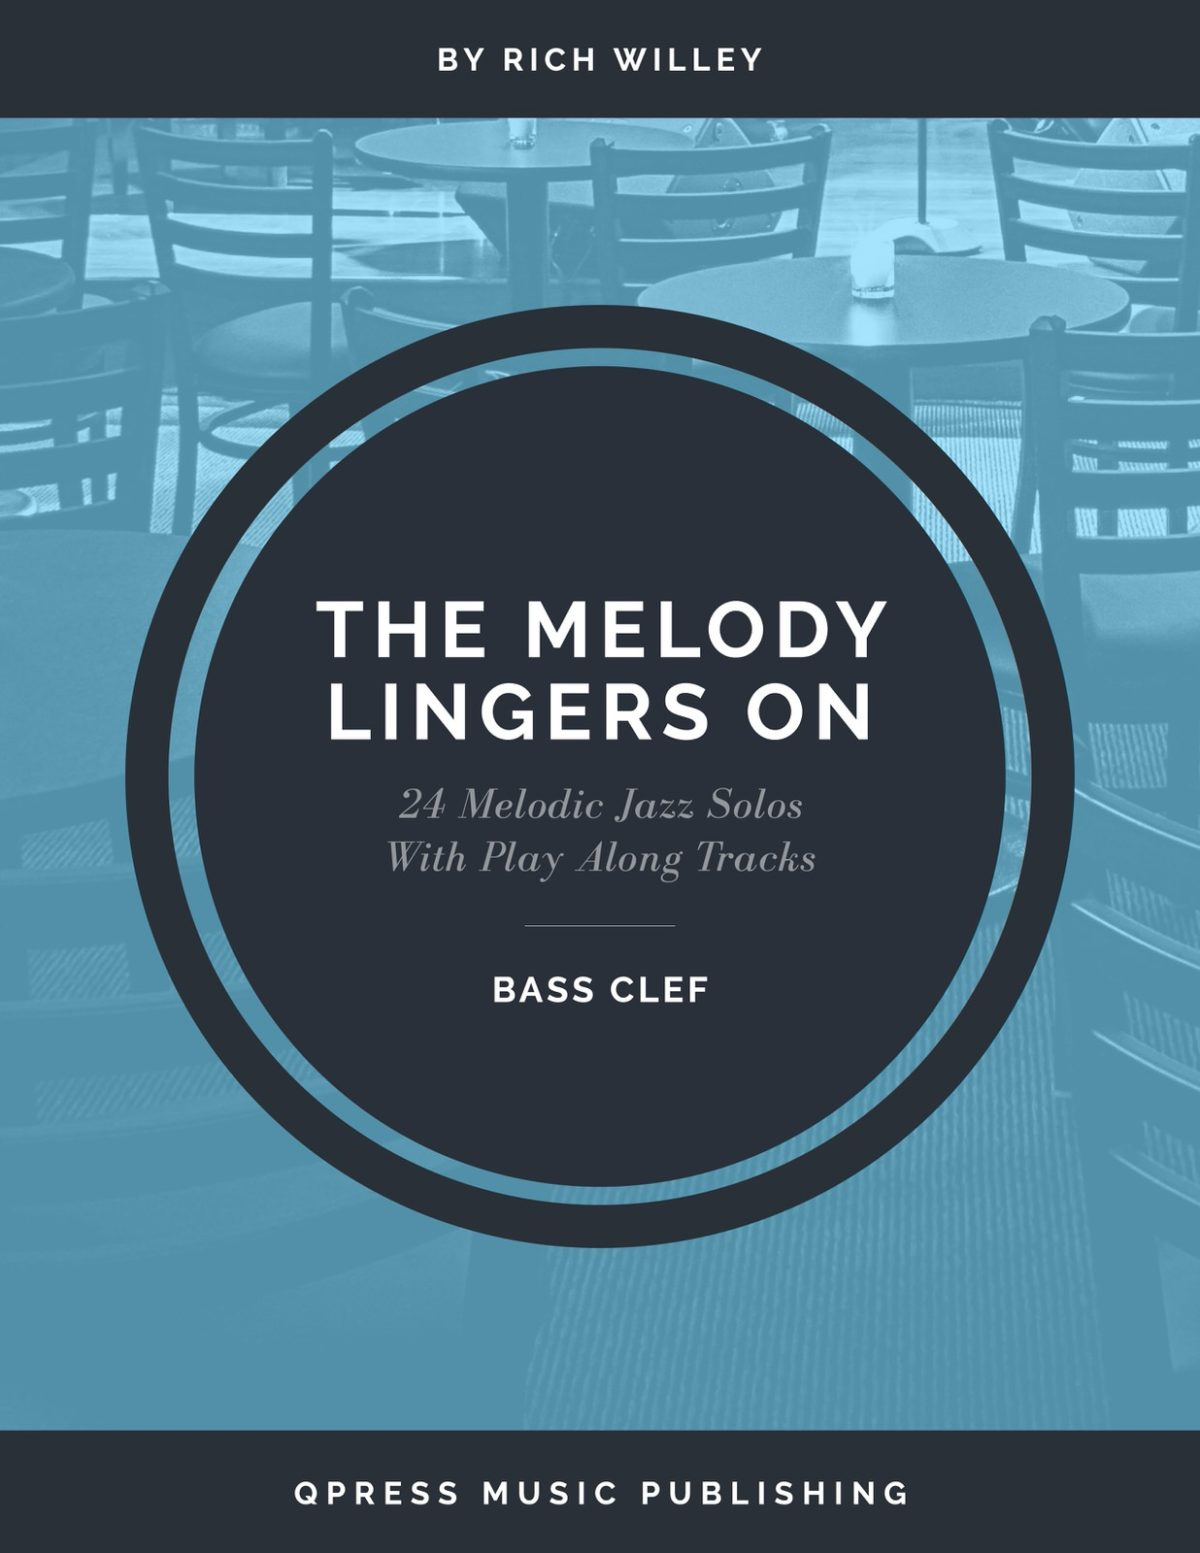 Willey, The Melody Lingers On (Bass Clef)-p01